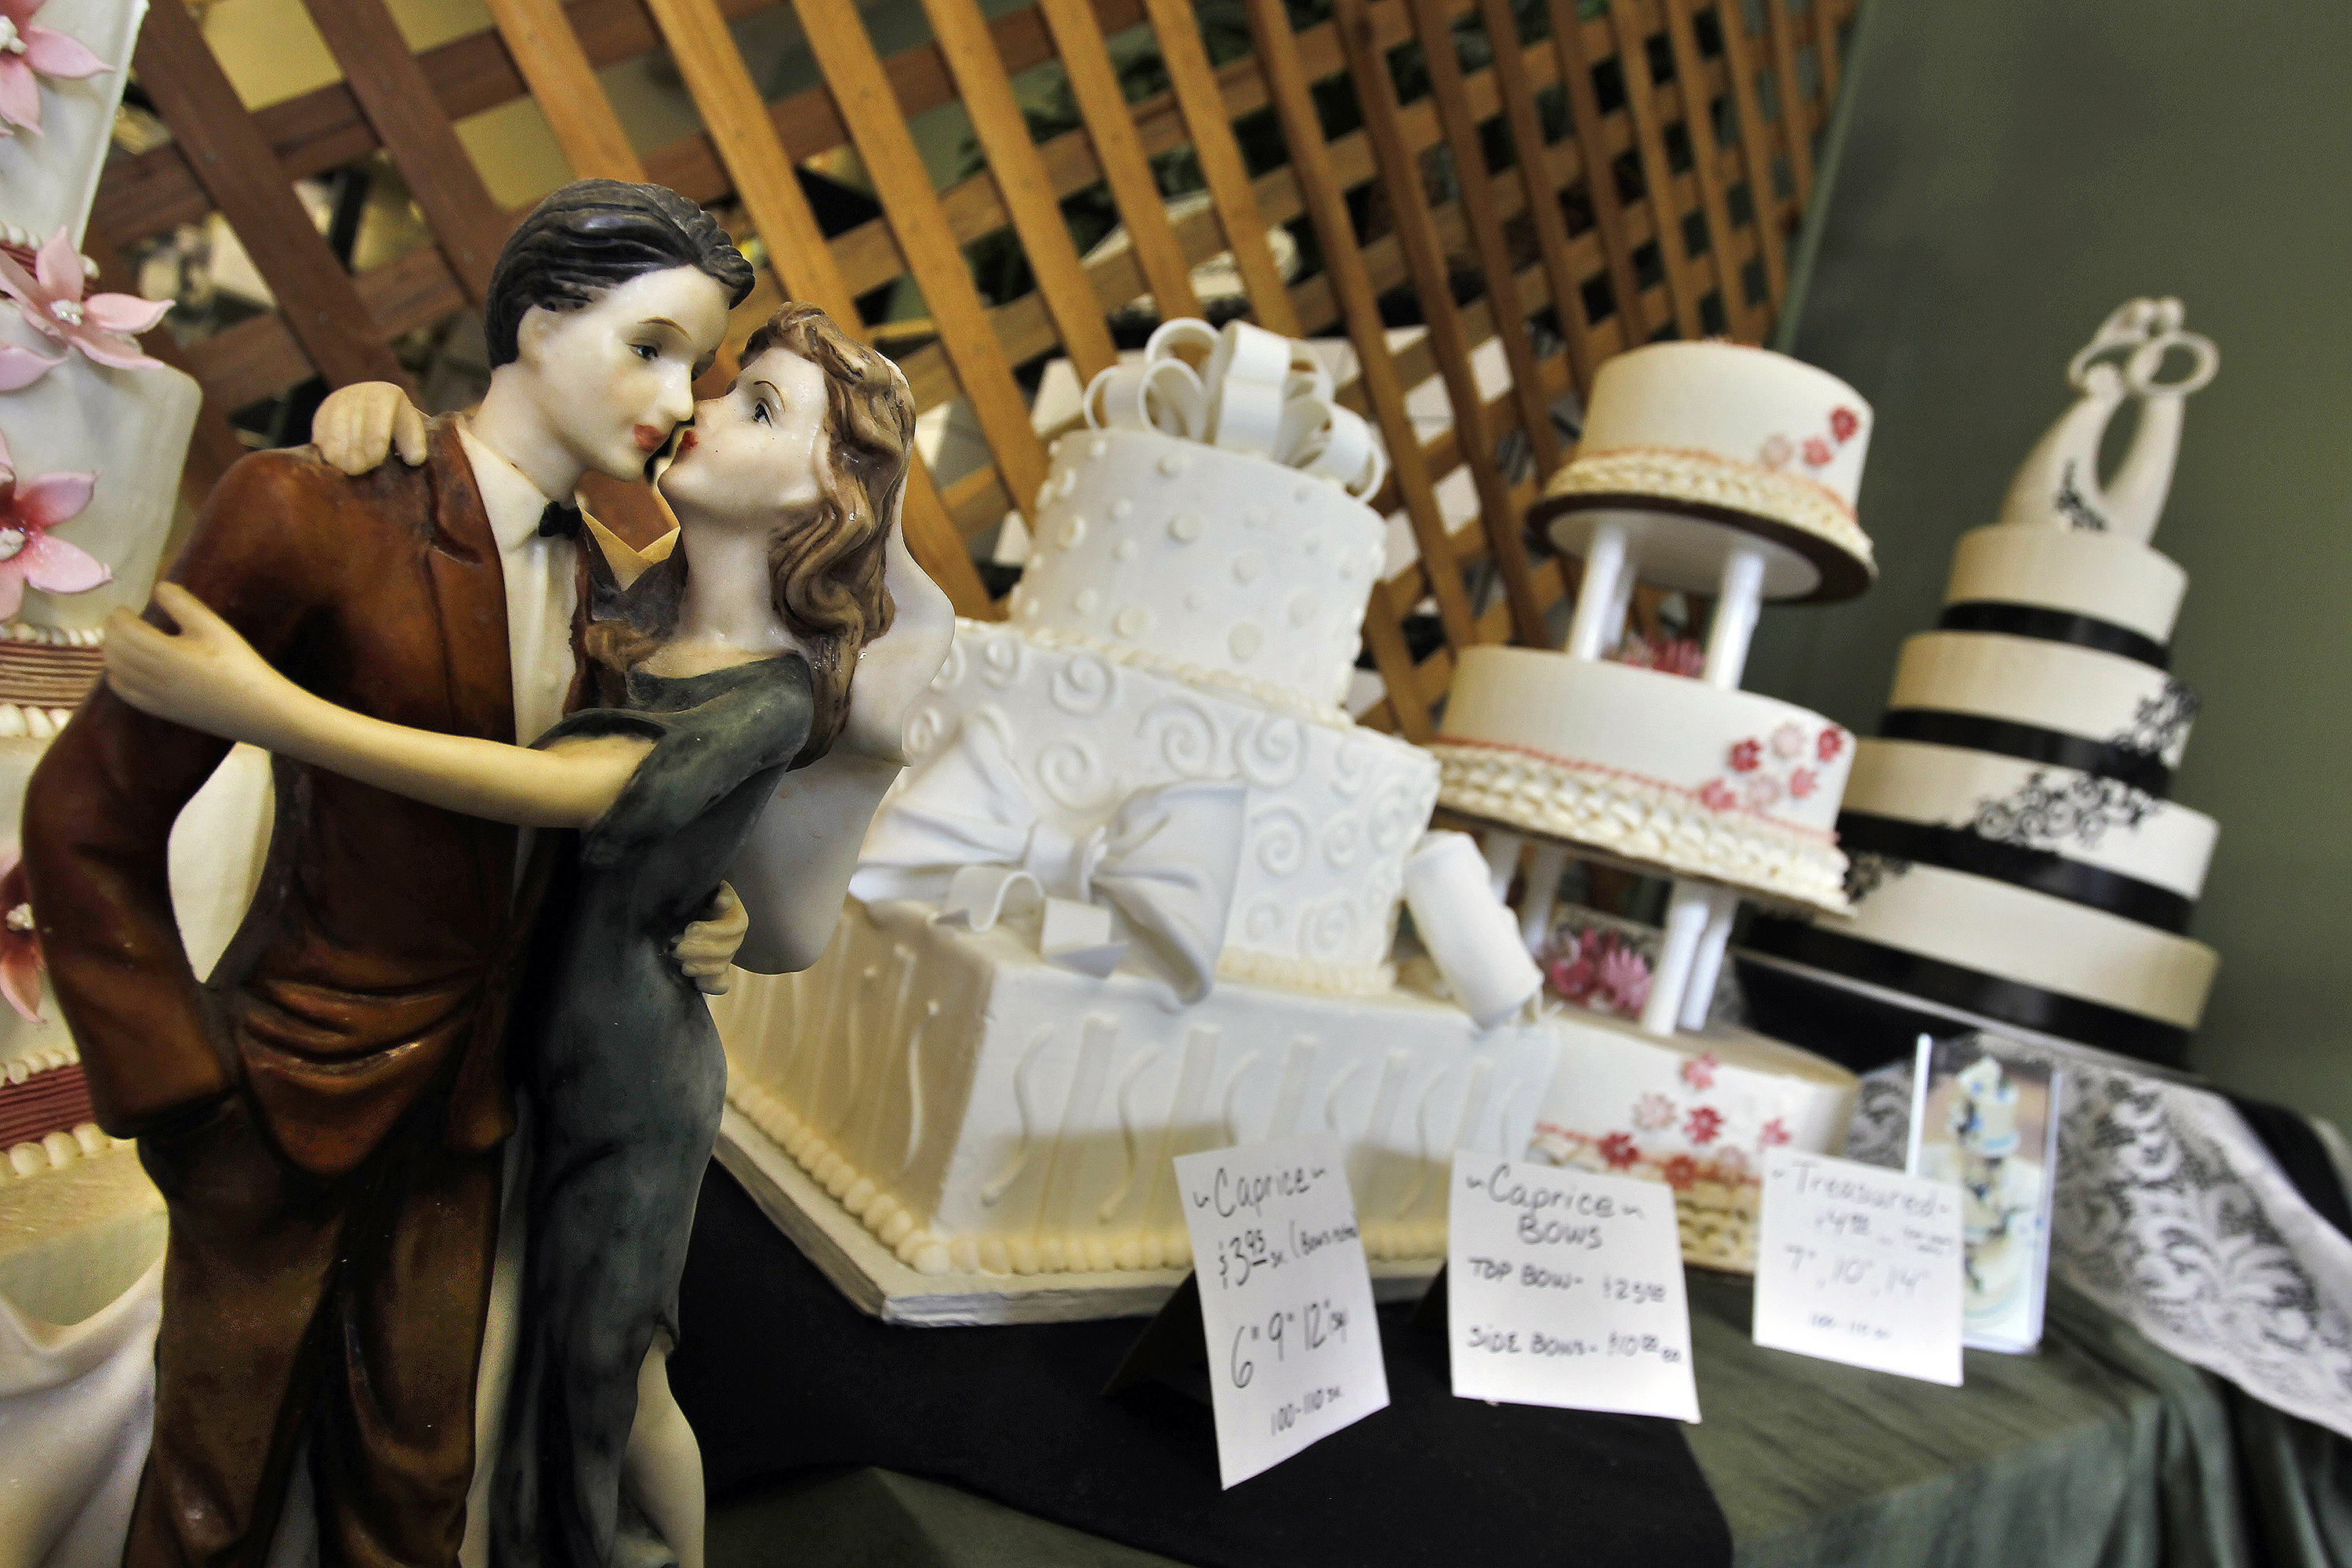 <p>Figurines are depicted in an embrace as part of the wedding cake display at Masterpiece Cakeshop in Denver, Thursday, June 6, 2013.</p>